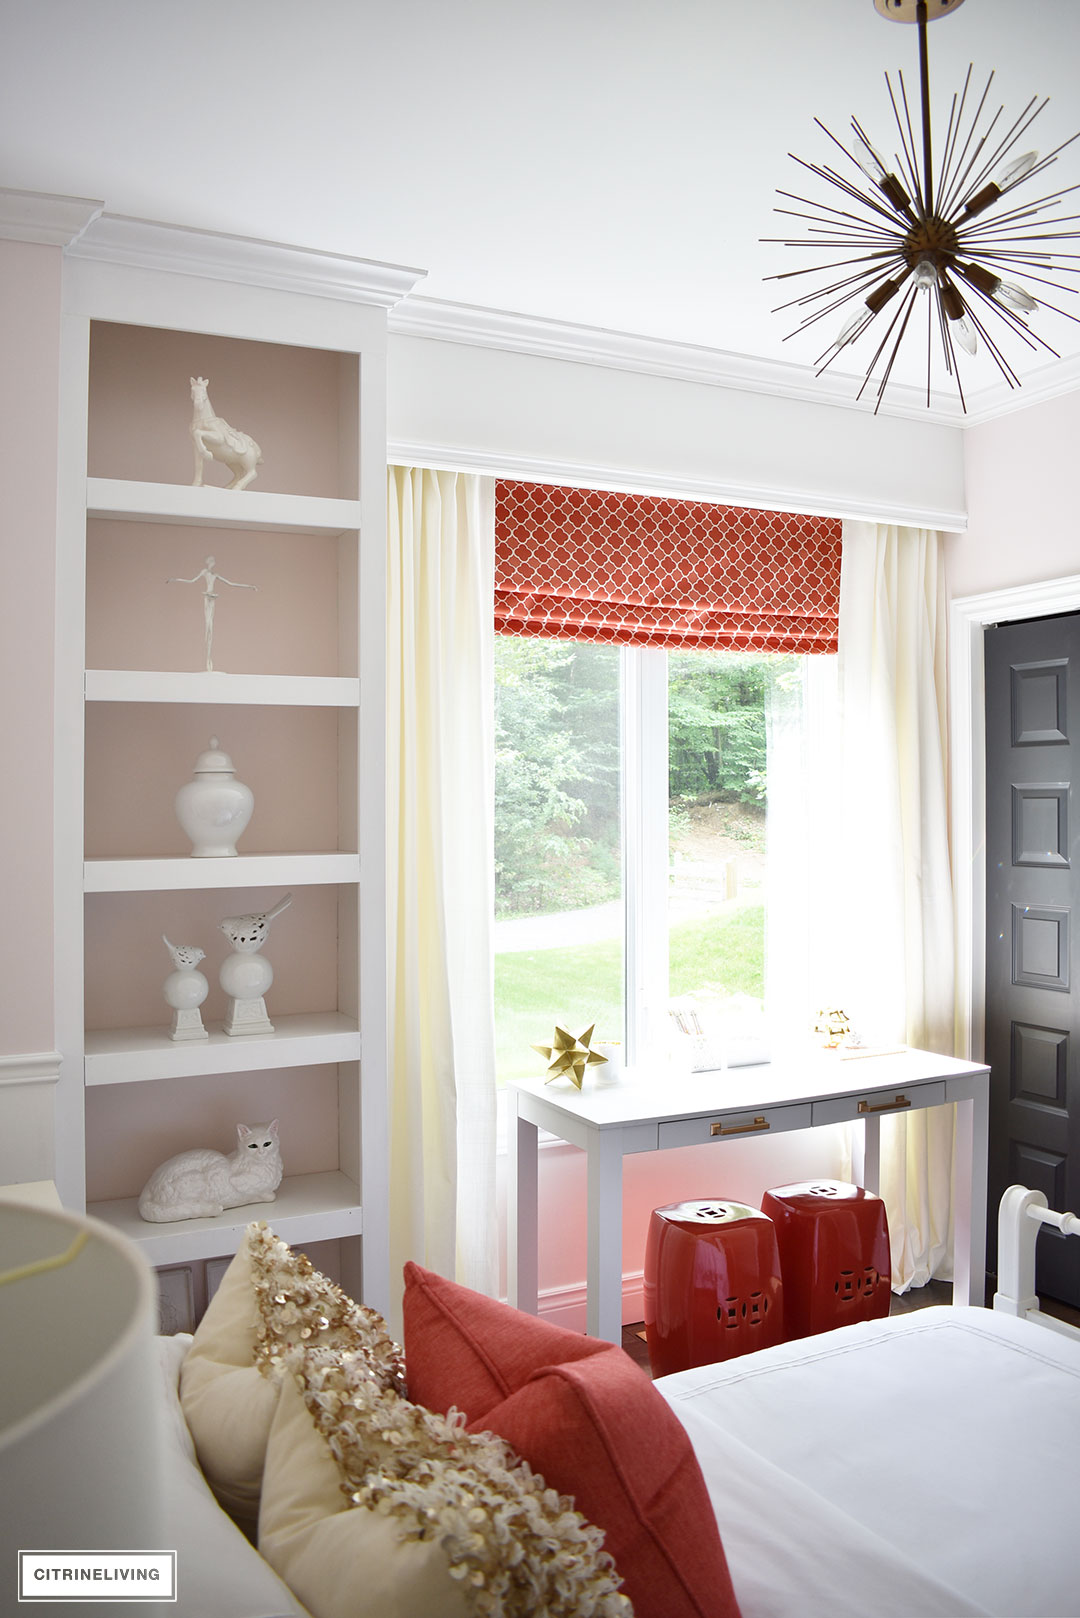 BLUSH PINK AND CORAL BEDROOM WITH BRASS ACCENTS